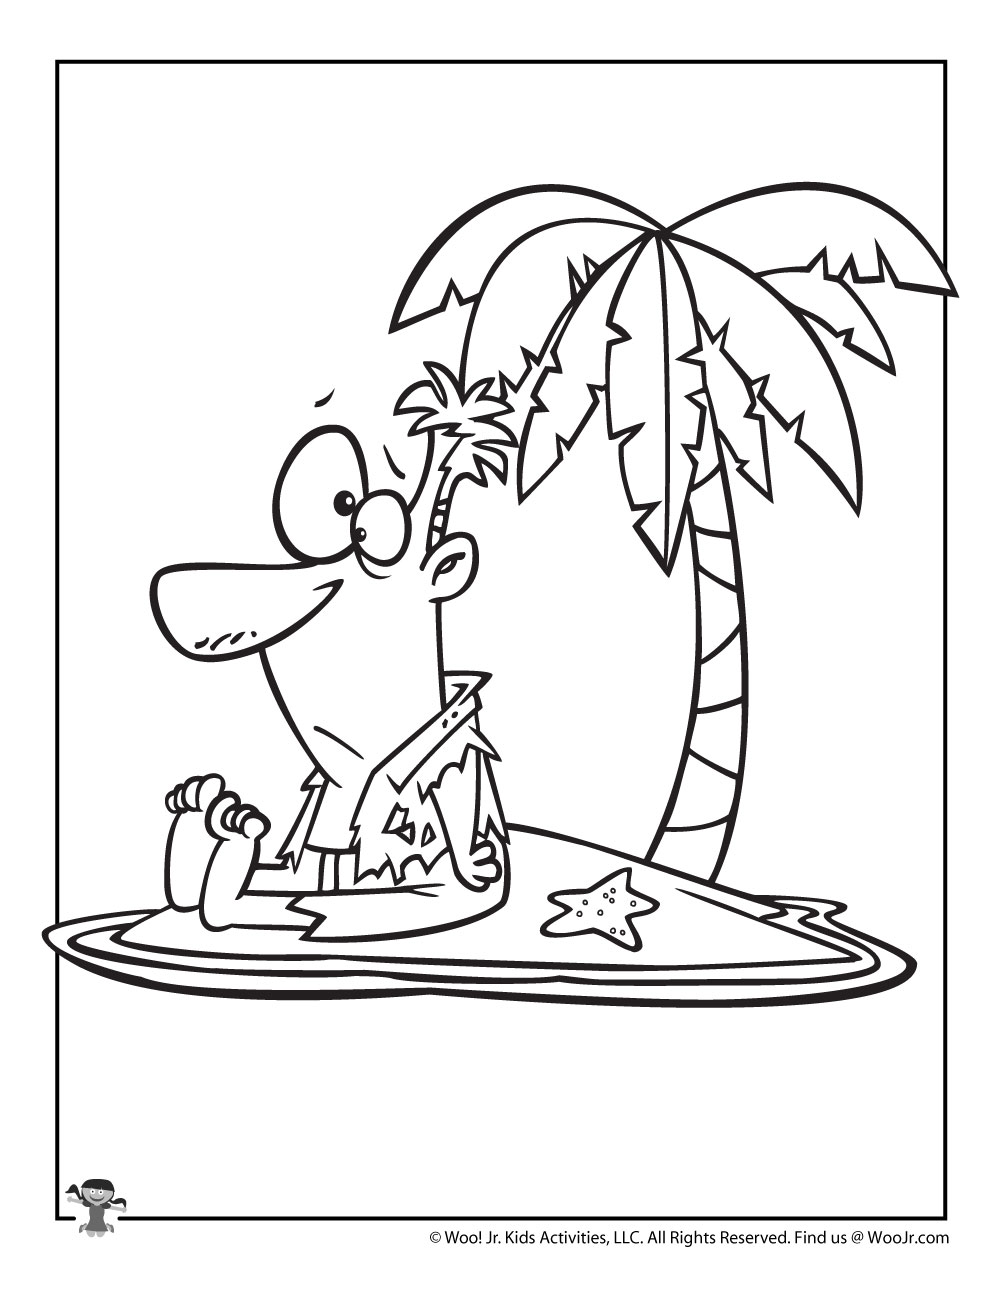 I is for Island Coloring Page | Woo! Jr. Kids Activities